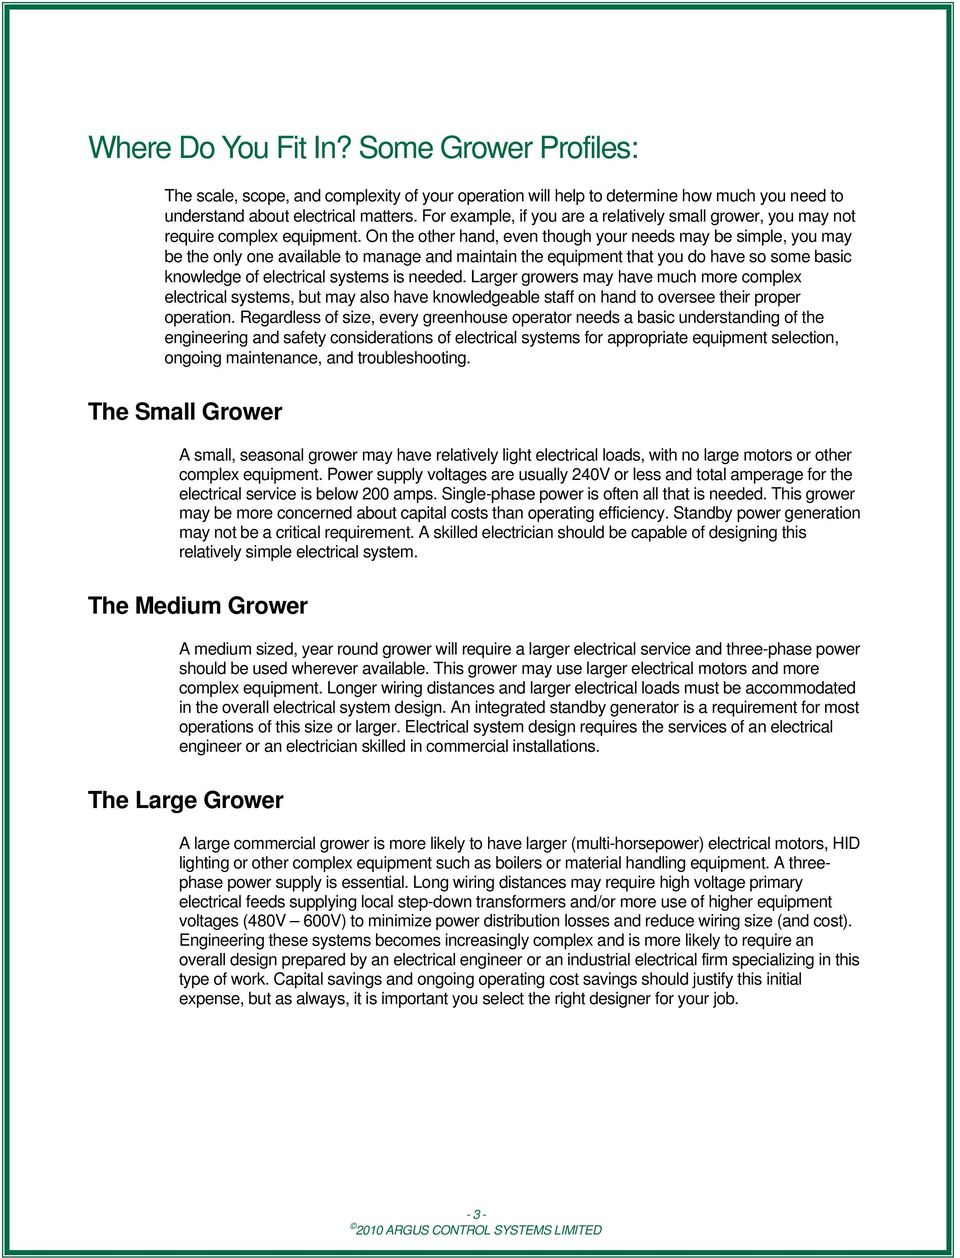 Greenhouse Electrical Design Considerations Application Note - PDF